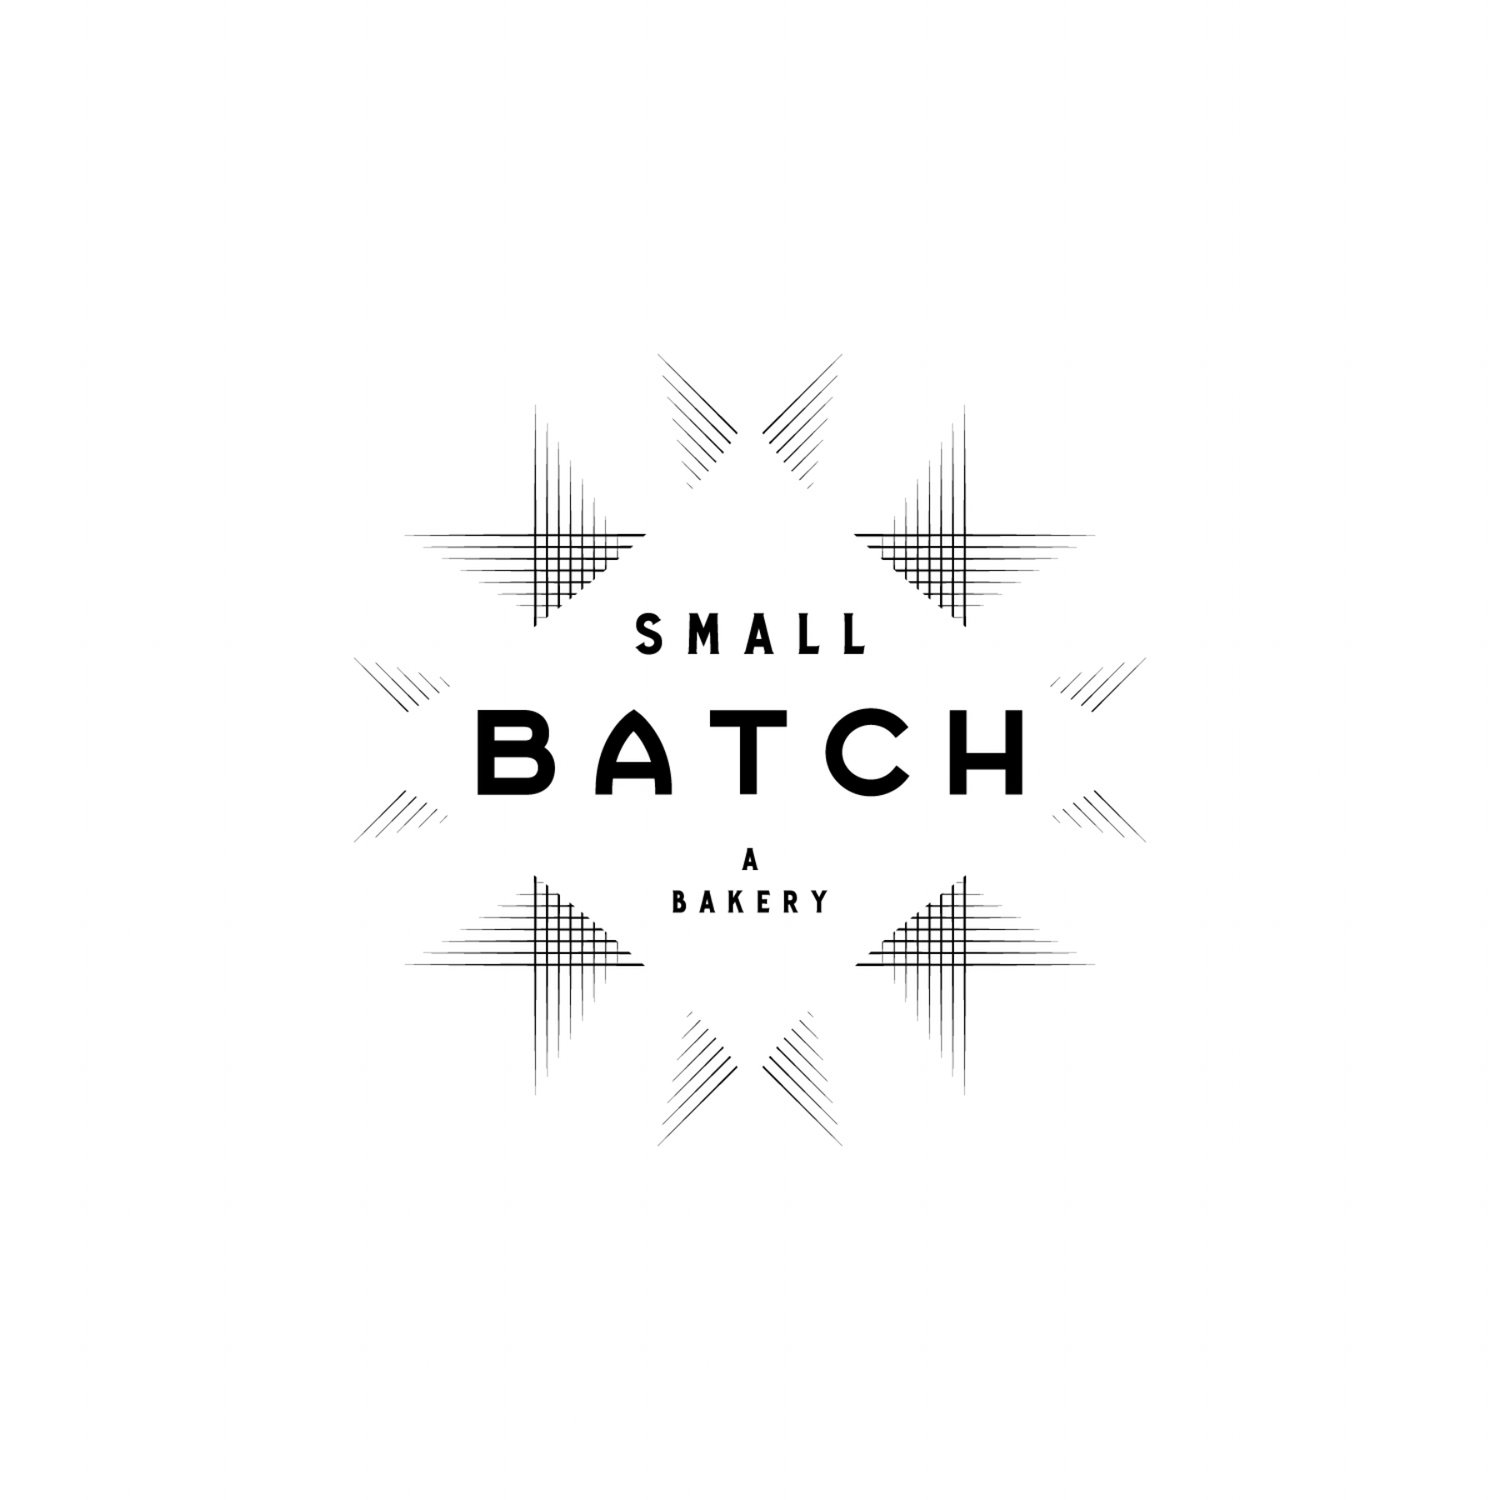 Small Batch a Bakery